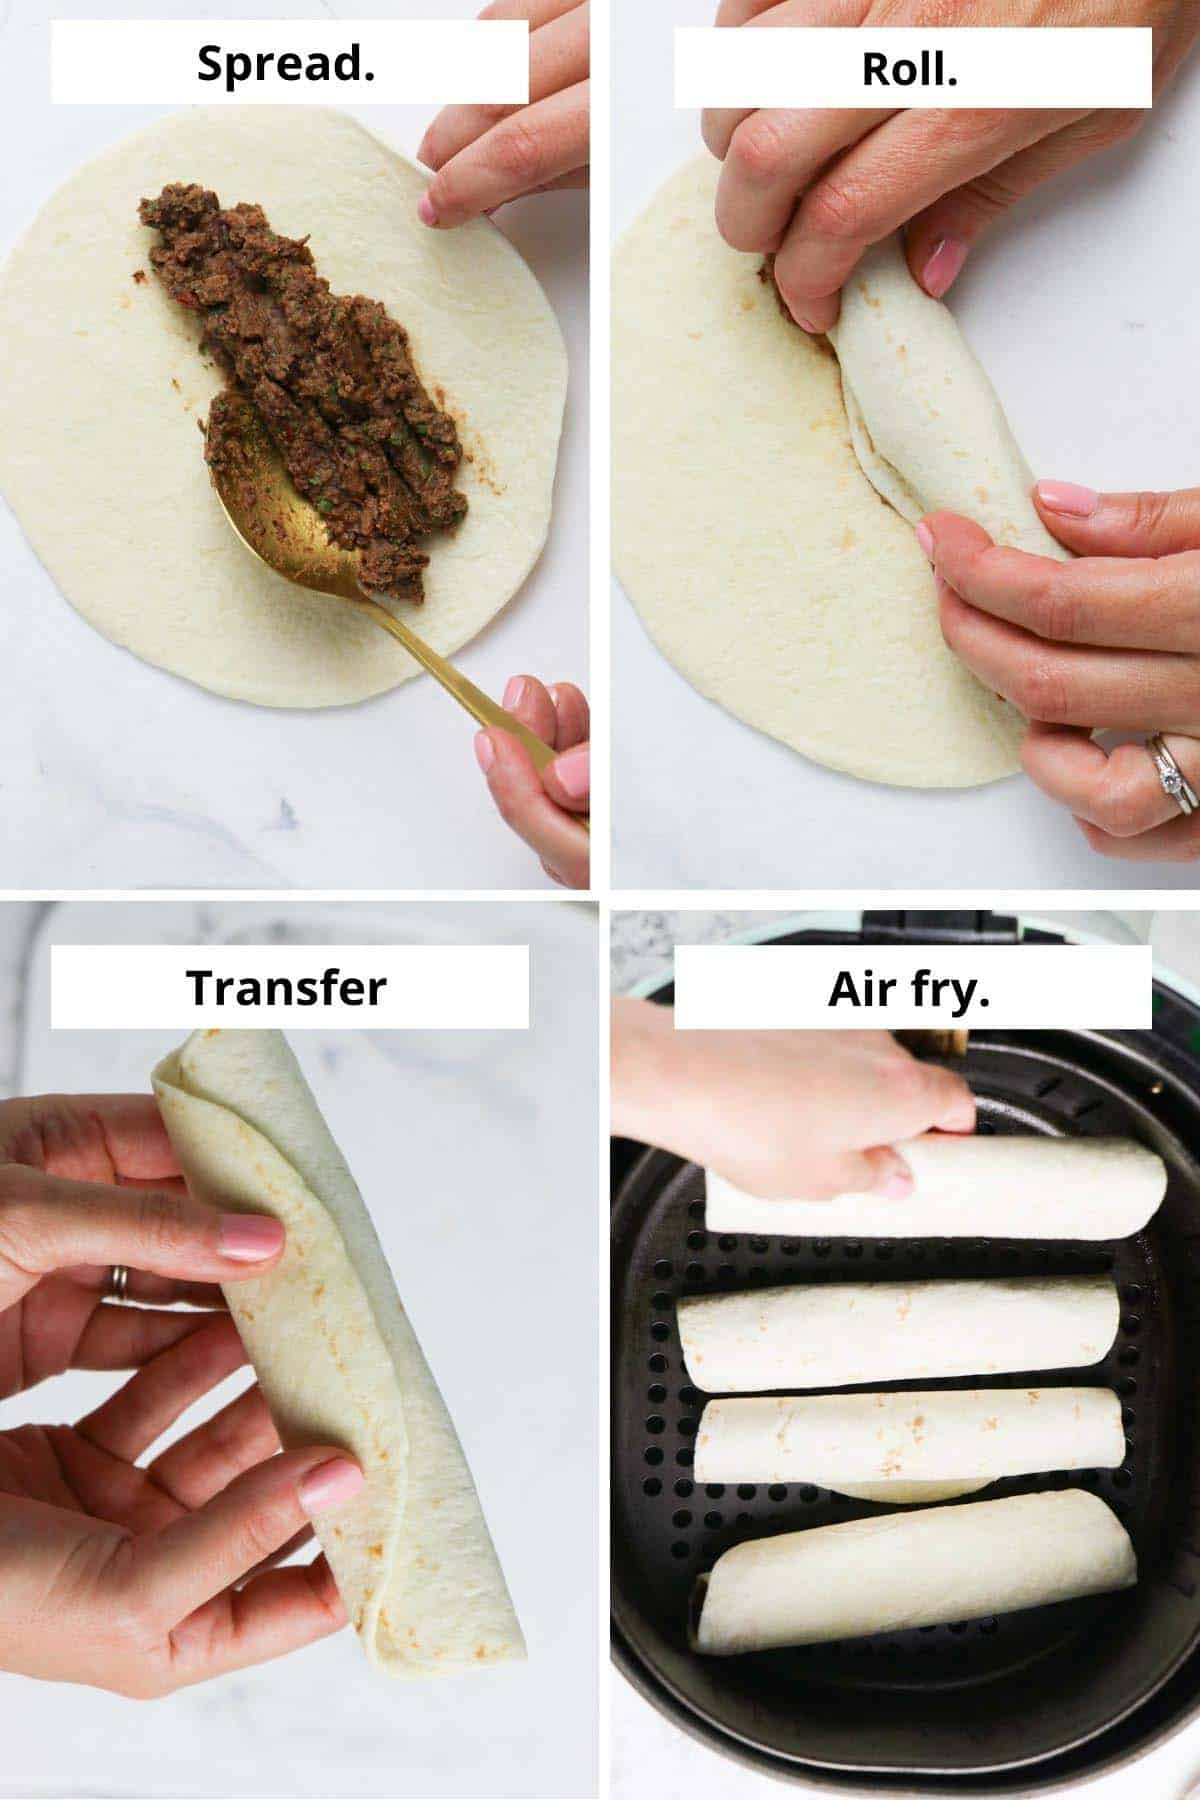 image collage showing spreading the filling, rolling the taquito, and putting it into the air fryer basket